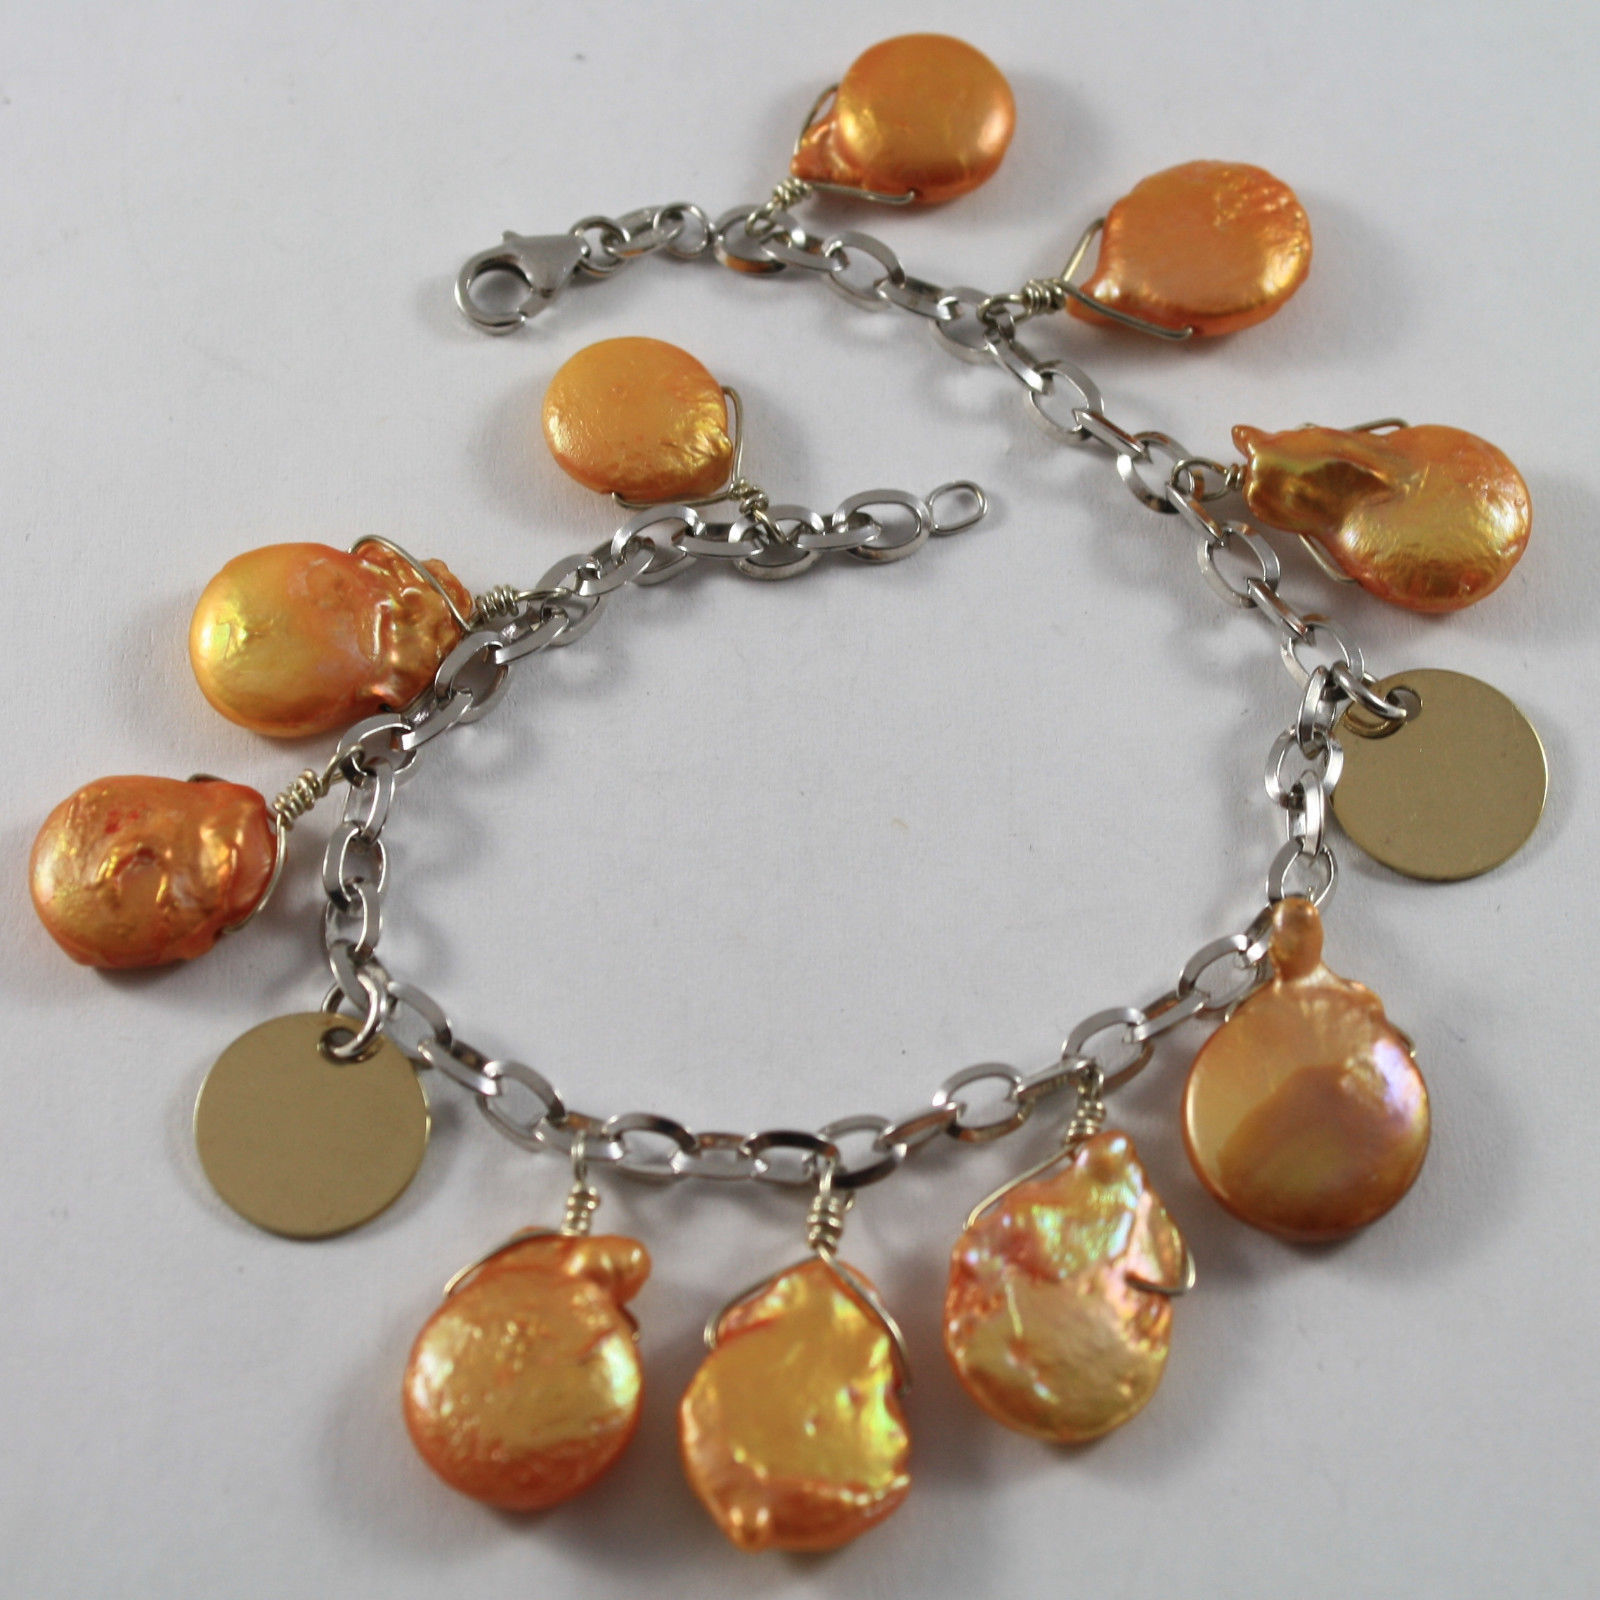 .925 RHODIUM SILVER BRACELET WITH ORANGE MOTHER OF PEARL AND GOLDEN DISC